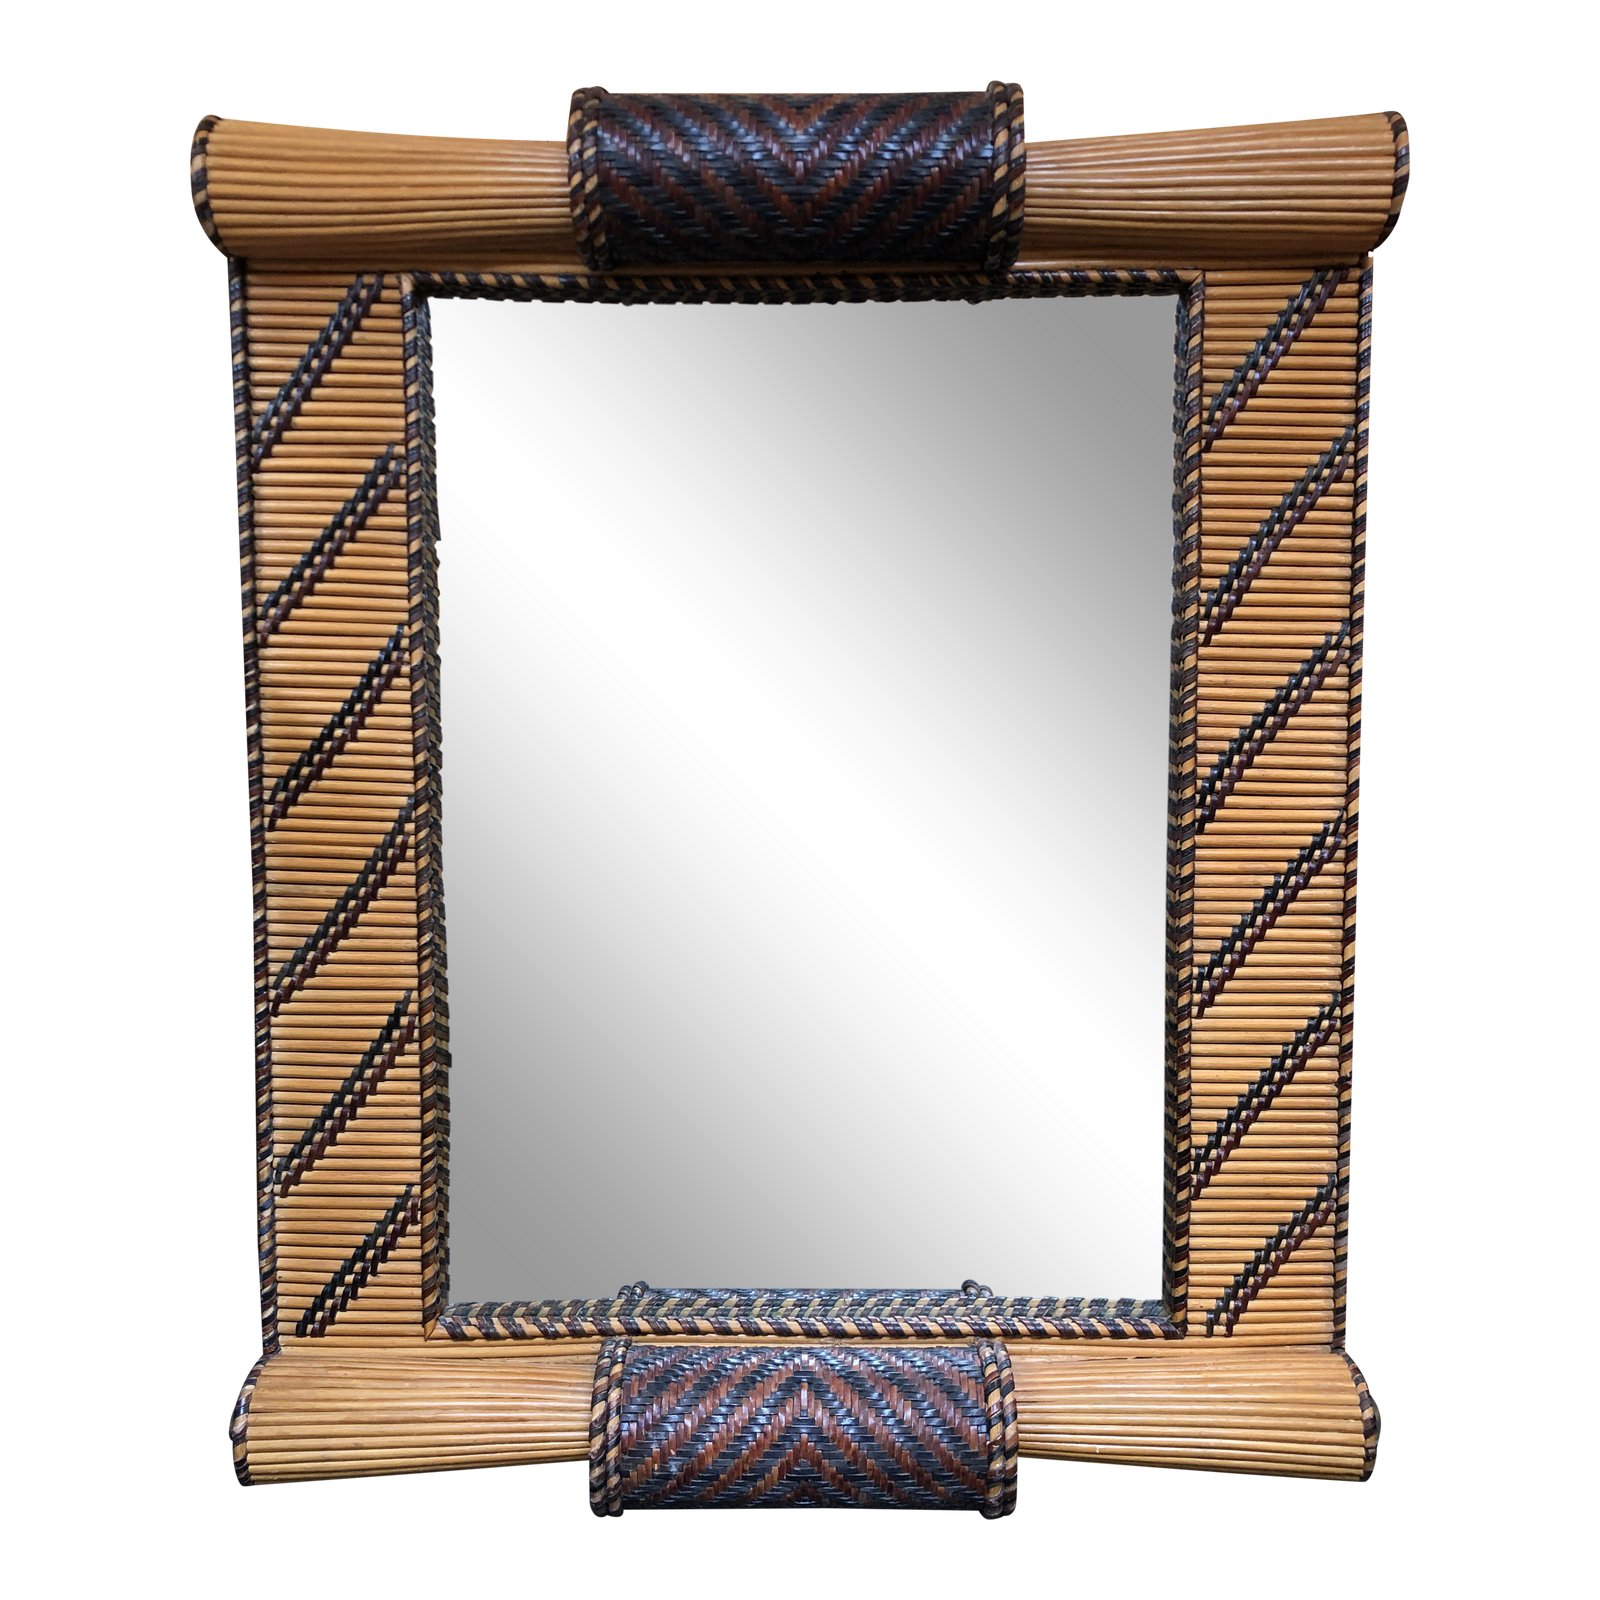 Bamboo Woven Leather Stone Wall Mirror Design Plus